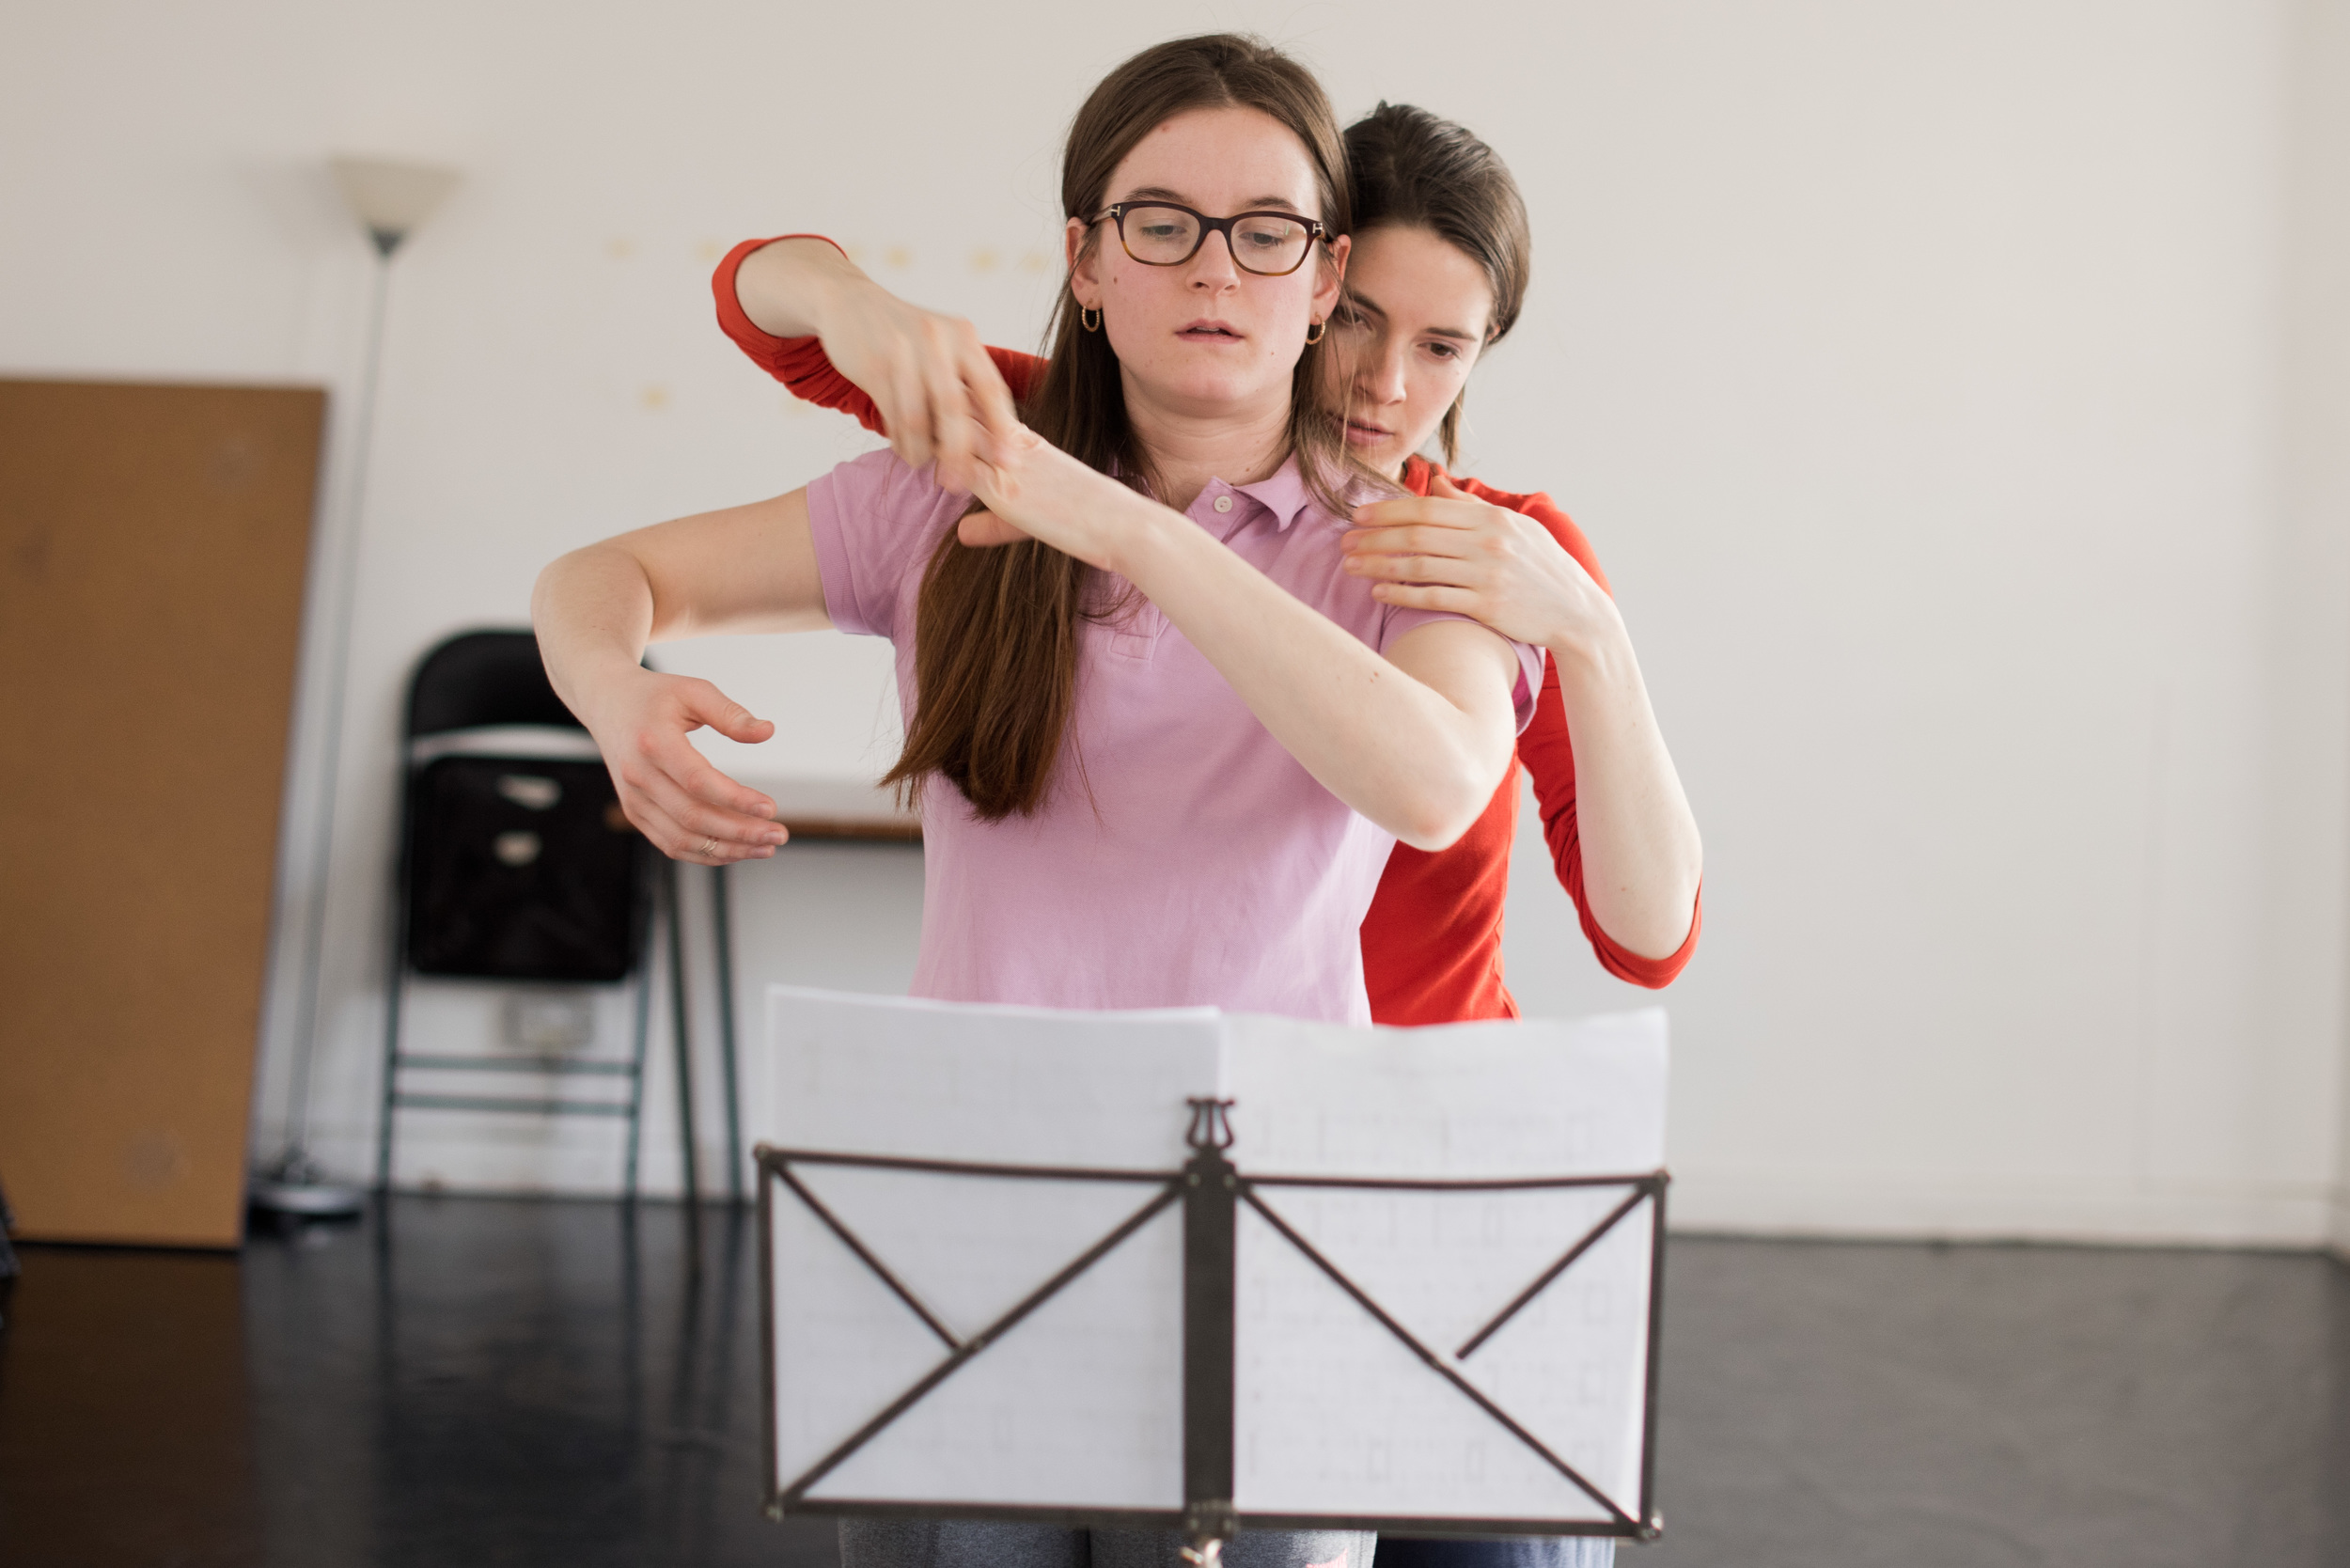 In rehearsal. Photo: Camilla Greenwell.